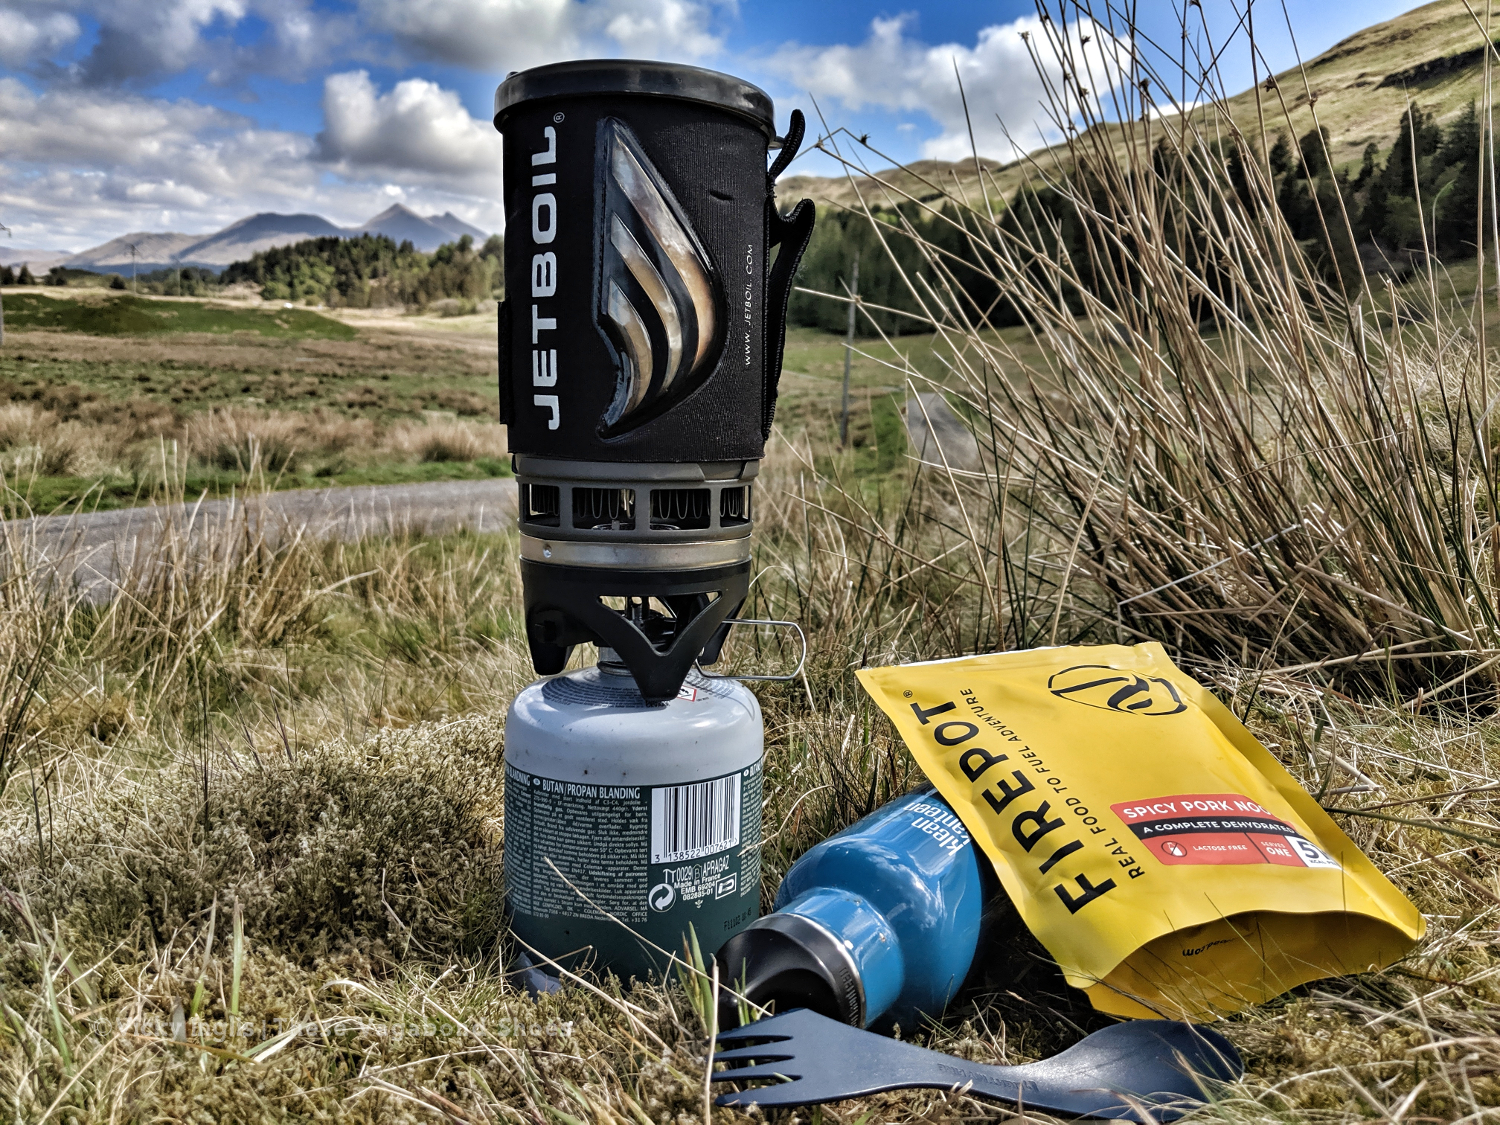 jetboil_small